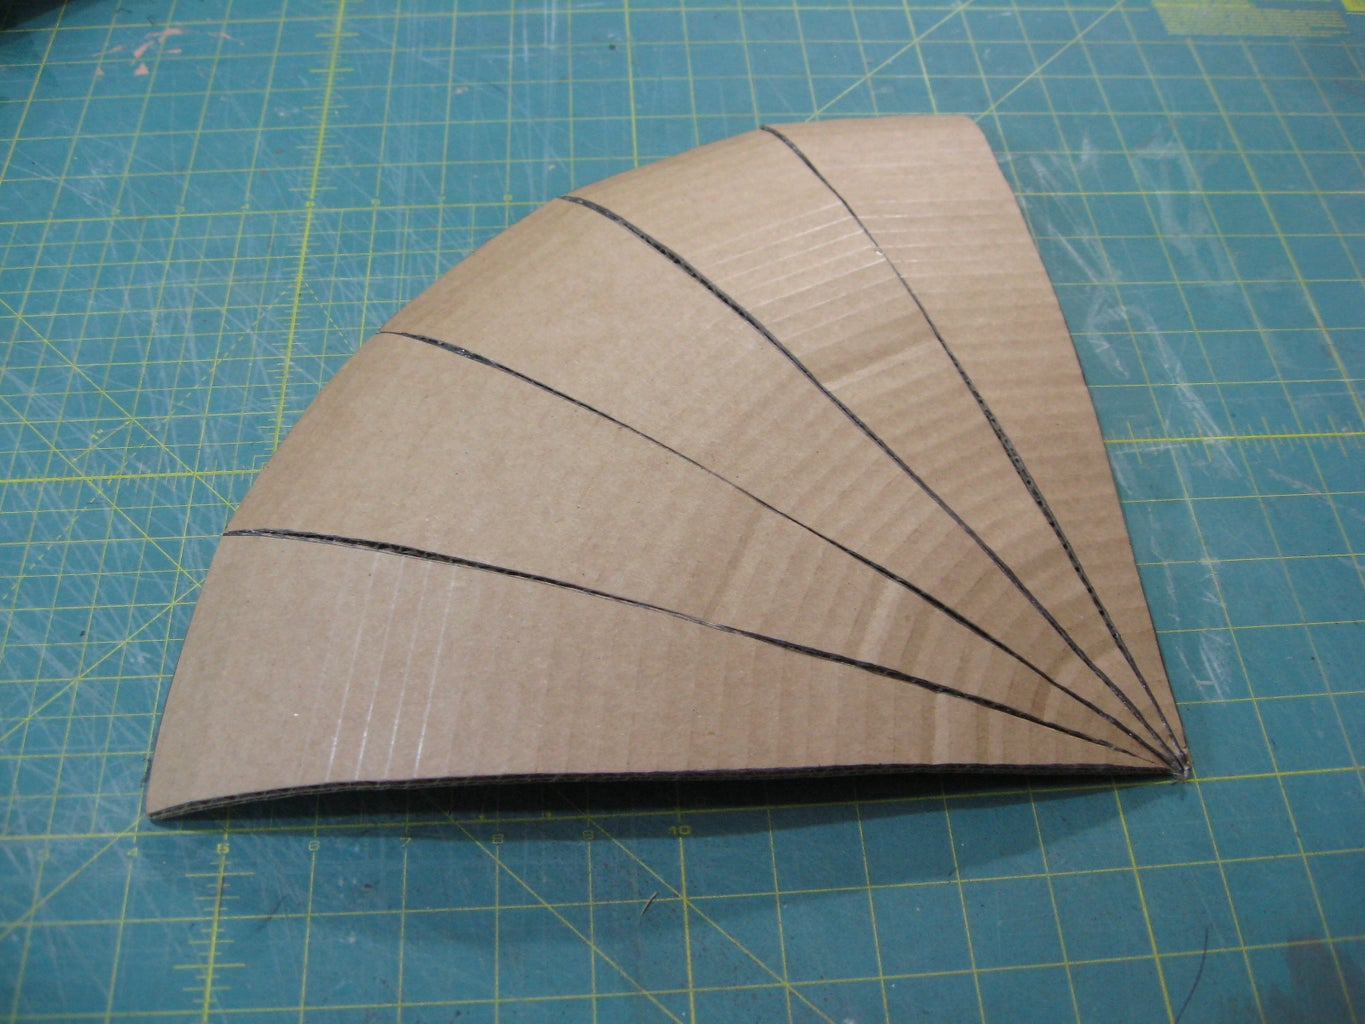 Tack Together Quarter-sections of the Shield